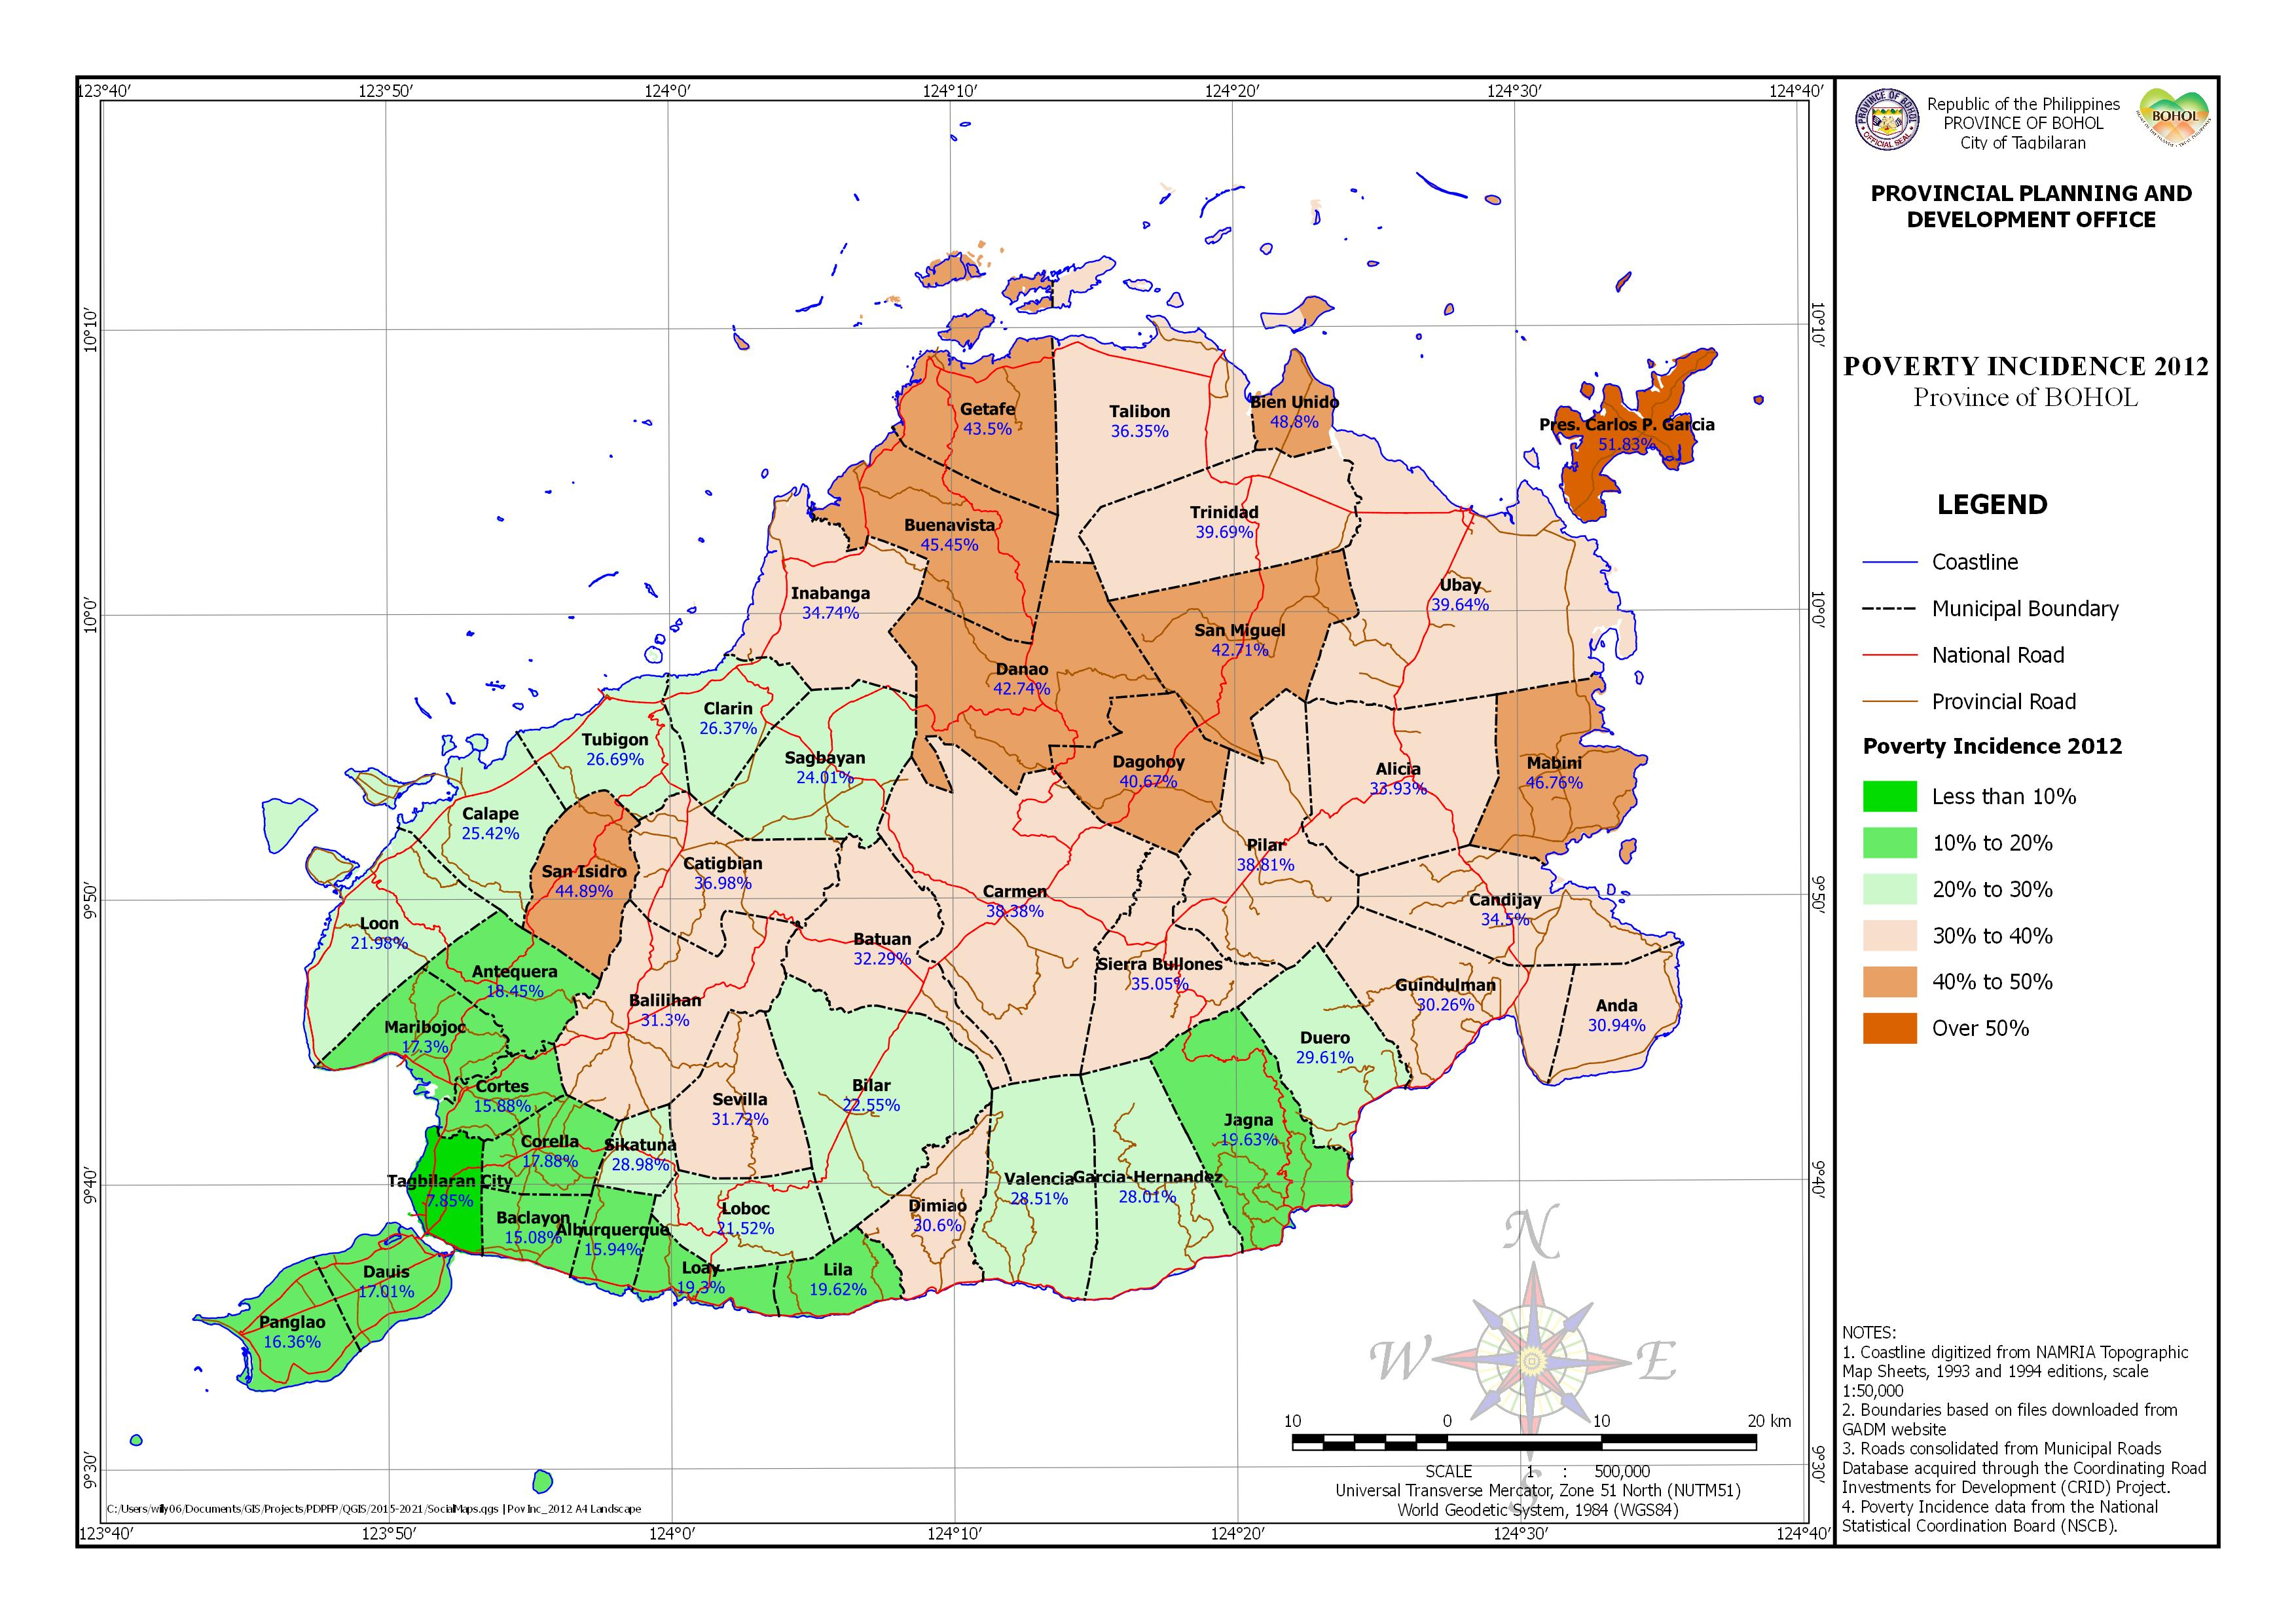 Poverty Incidence Map - 2012